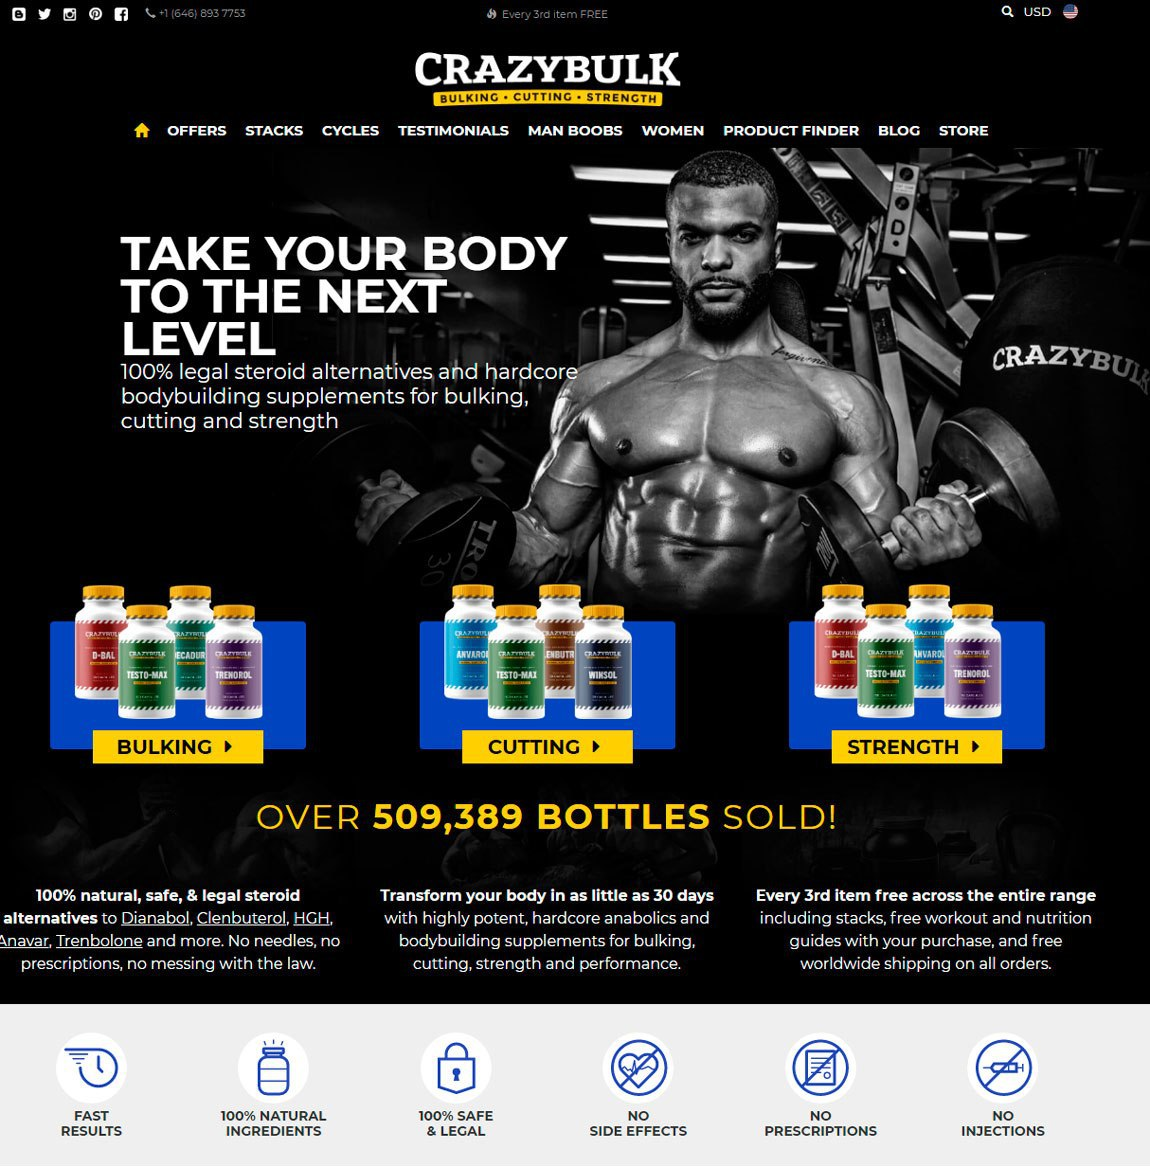 Anabolic research products